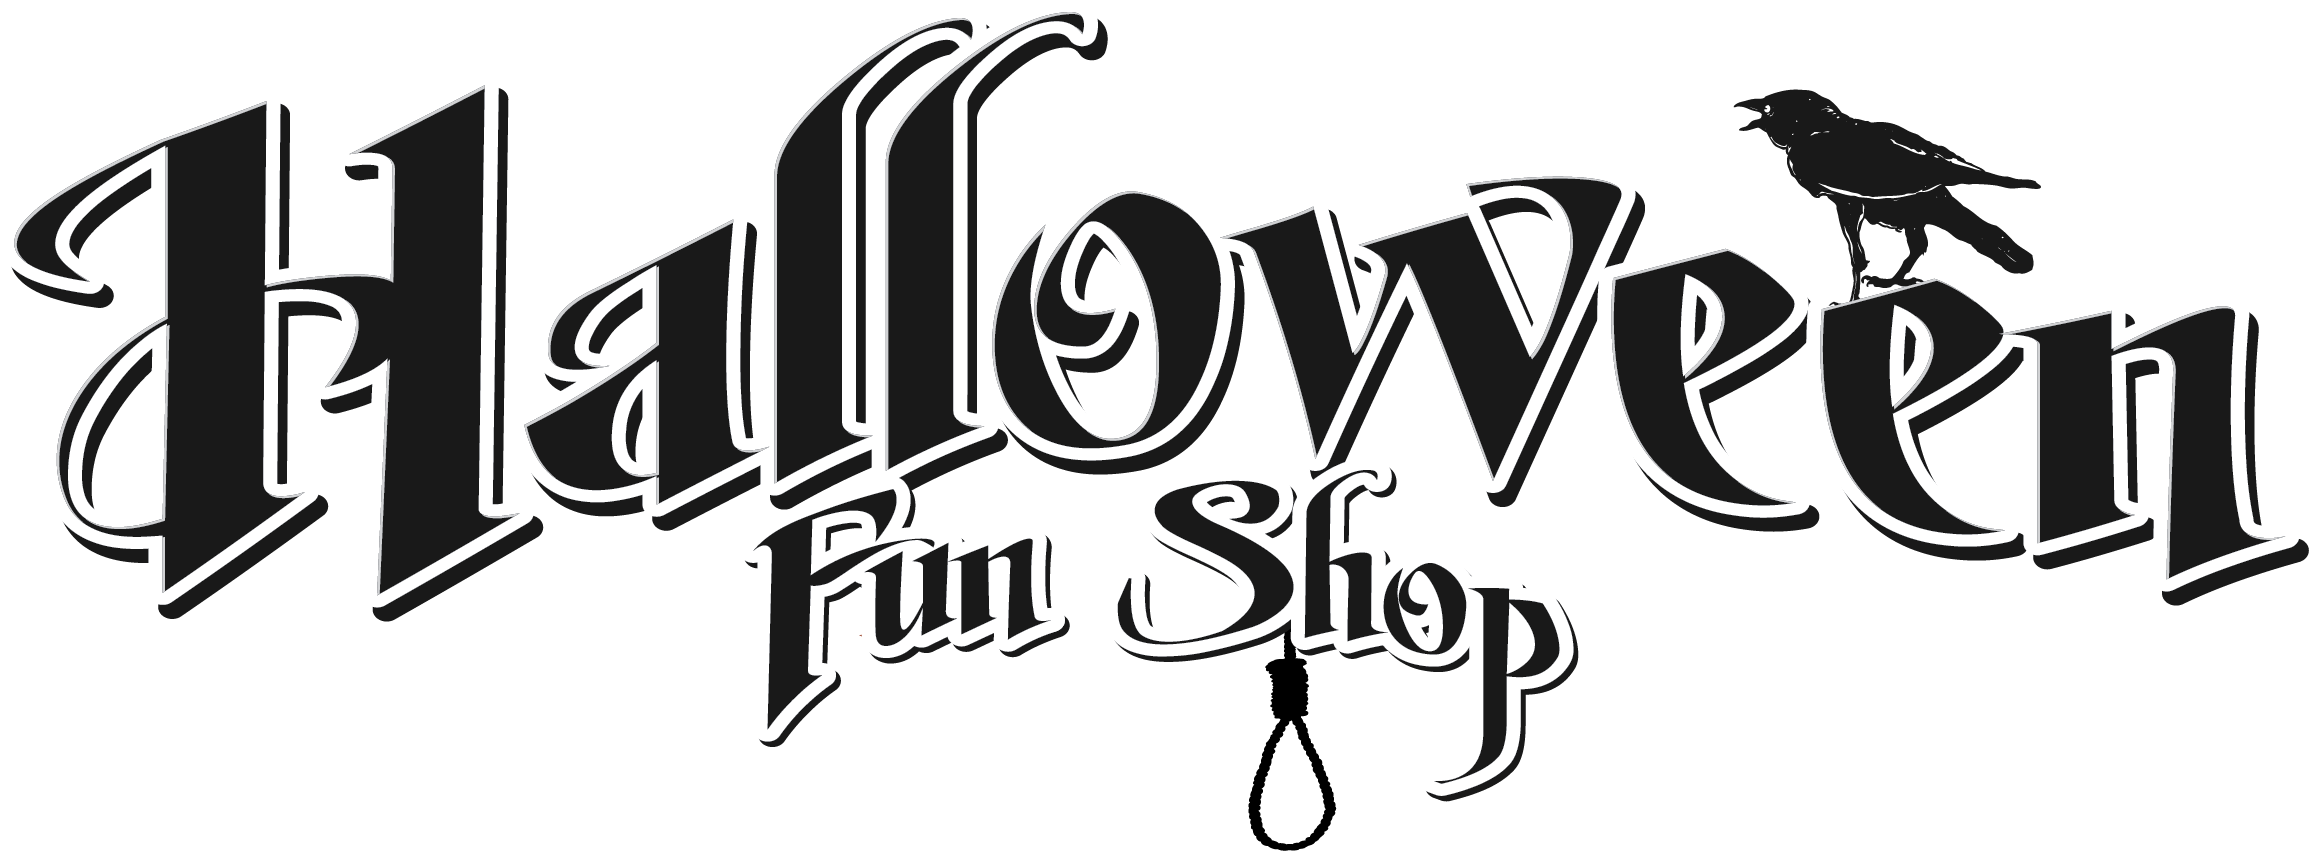 Costumes for Halloween, Kids, Adults, Fun & more | HalloweenFunShop.com